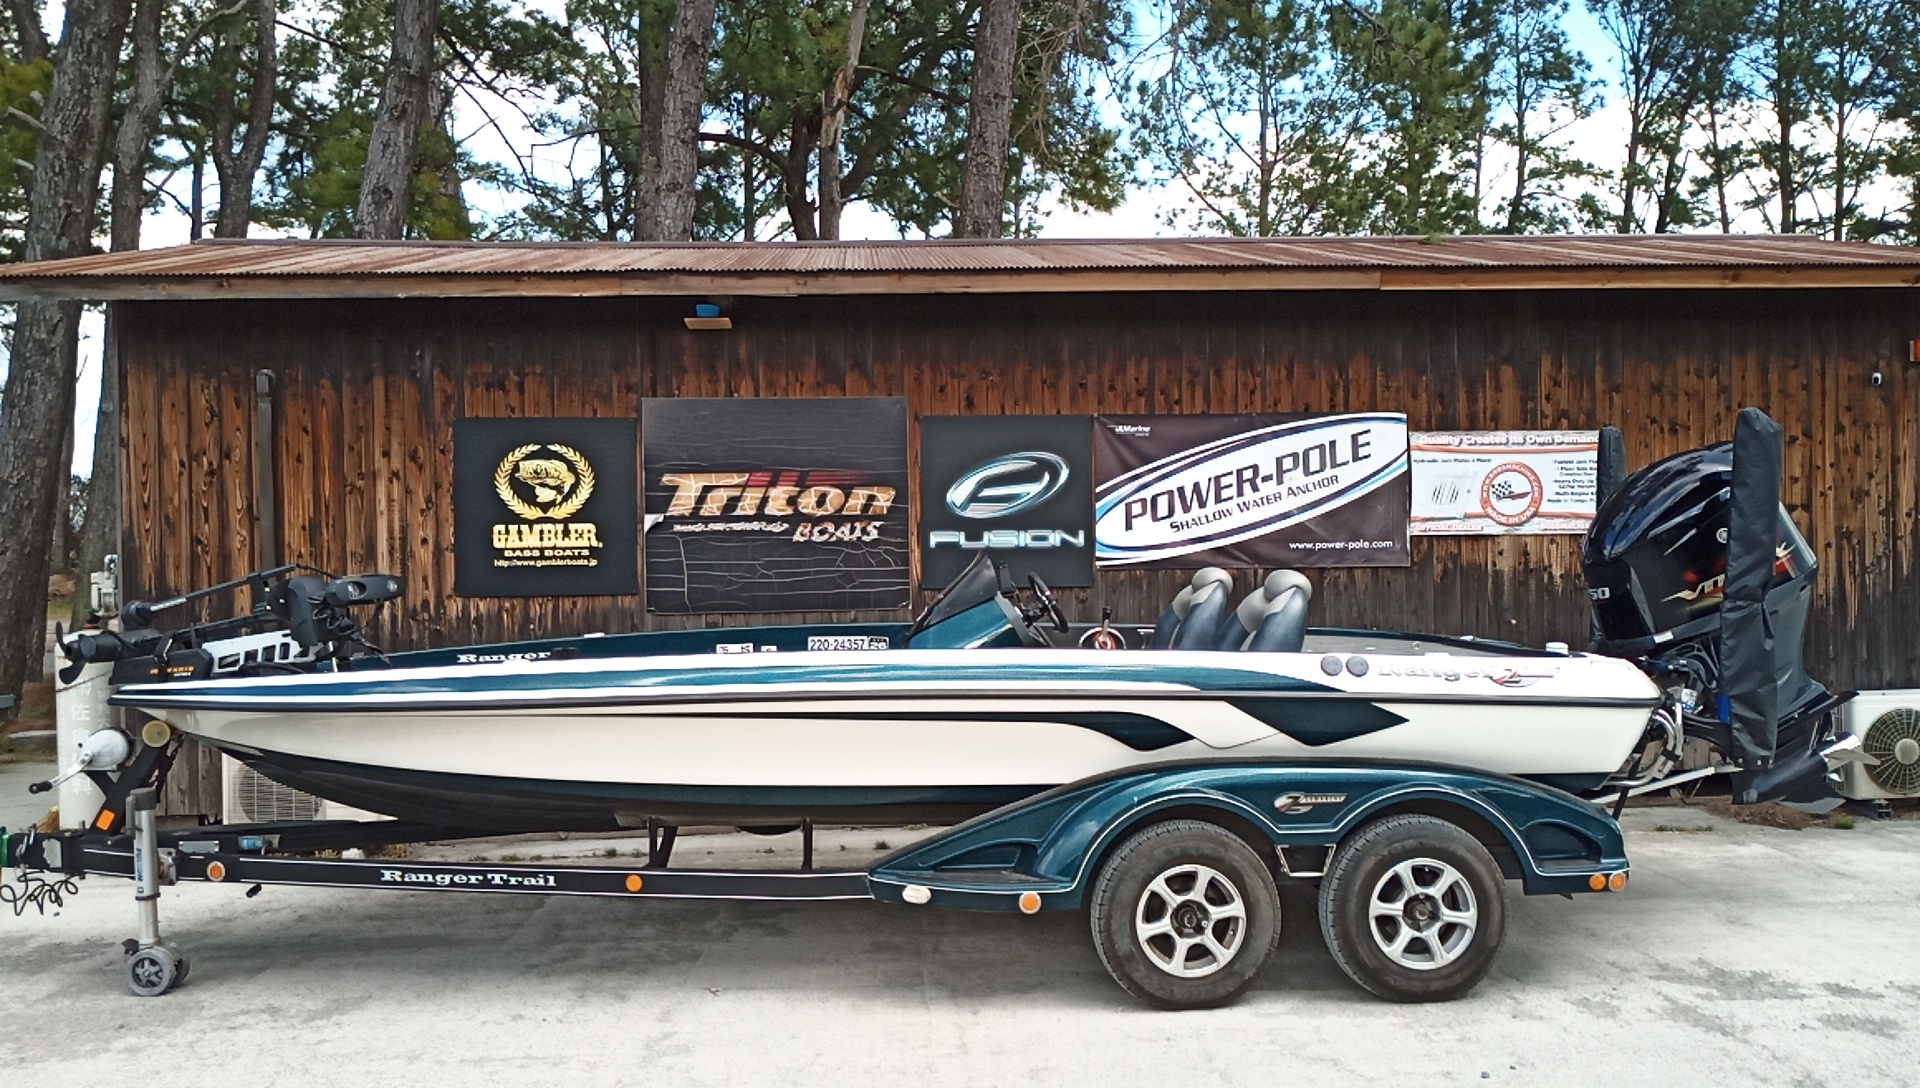 '11 Ranger Boats Z520 with SHO250